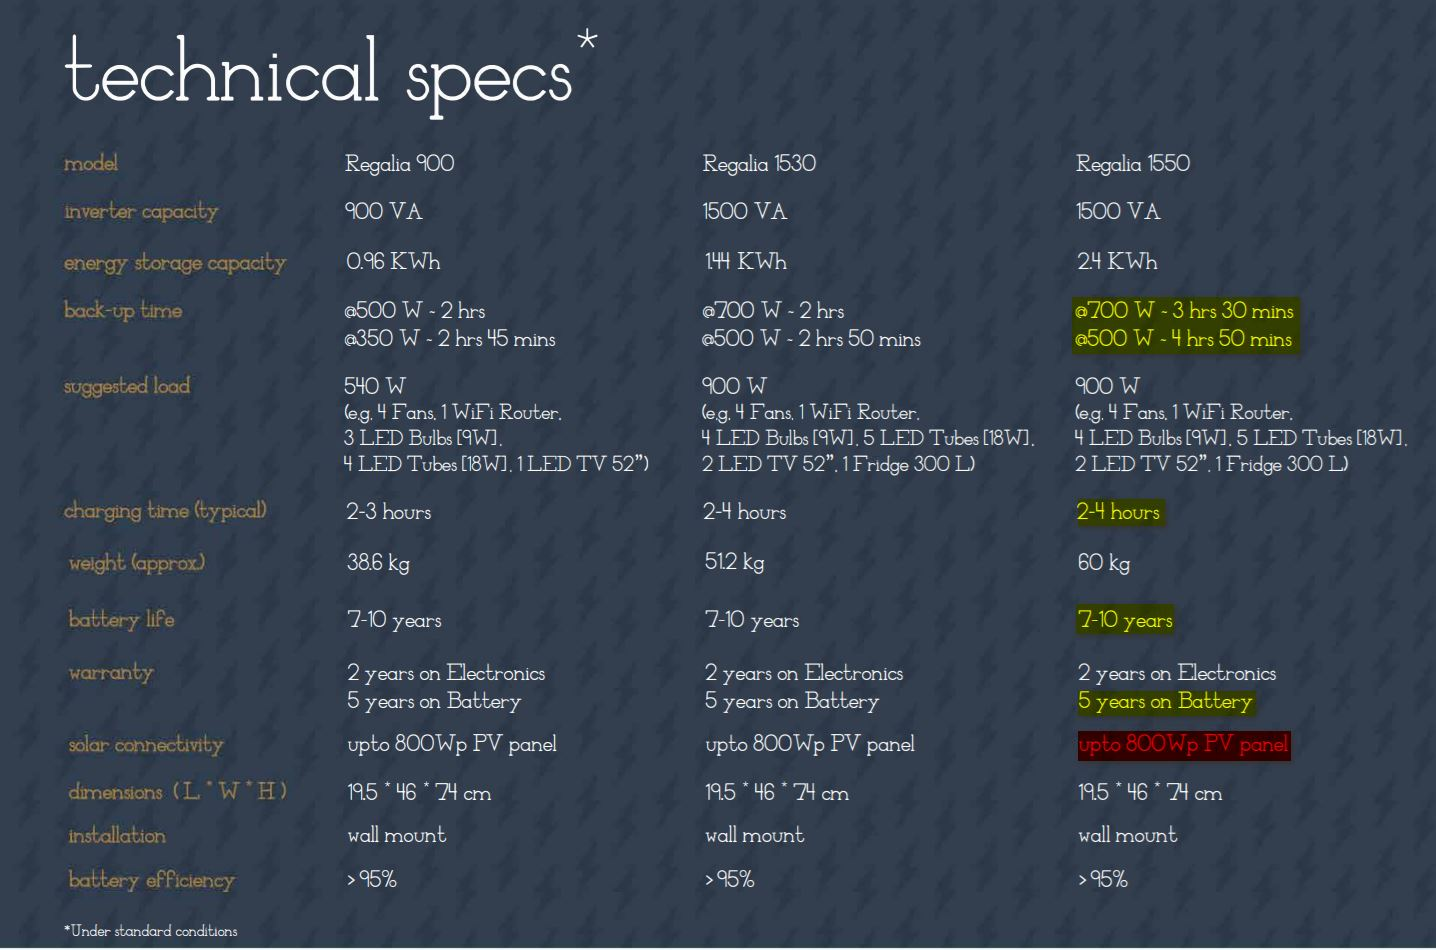 regalia specs_catalog.JPG